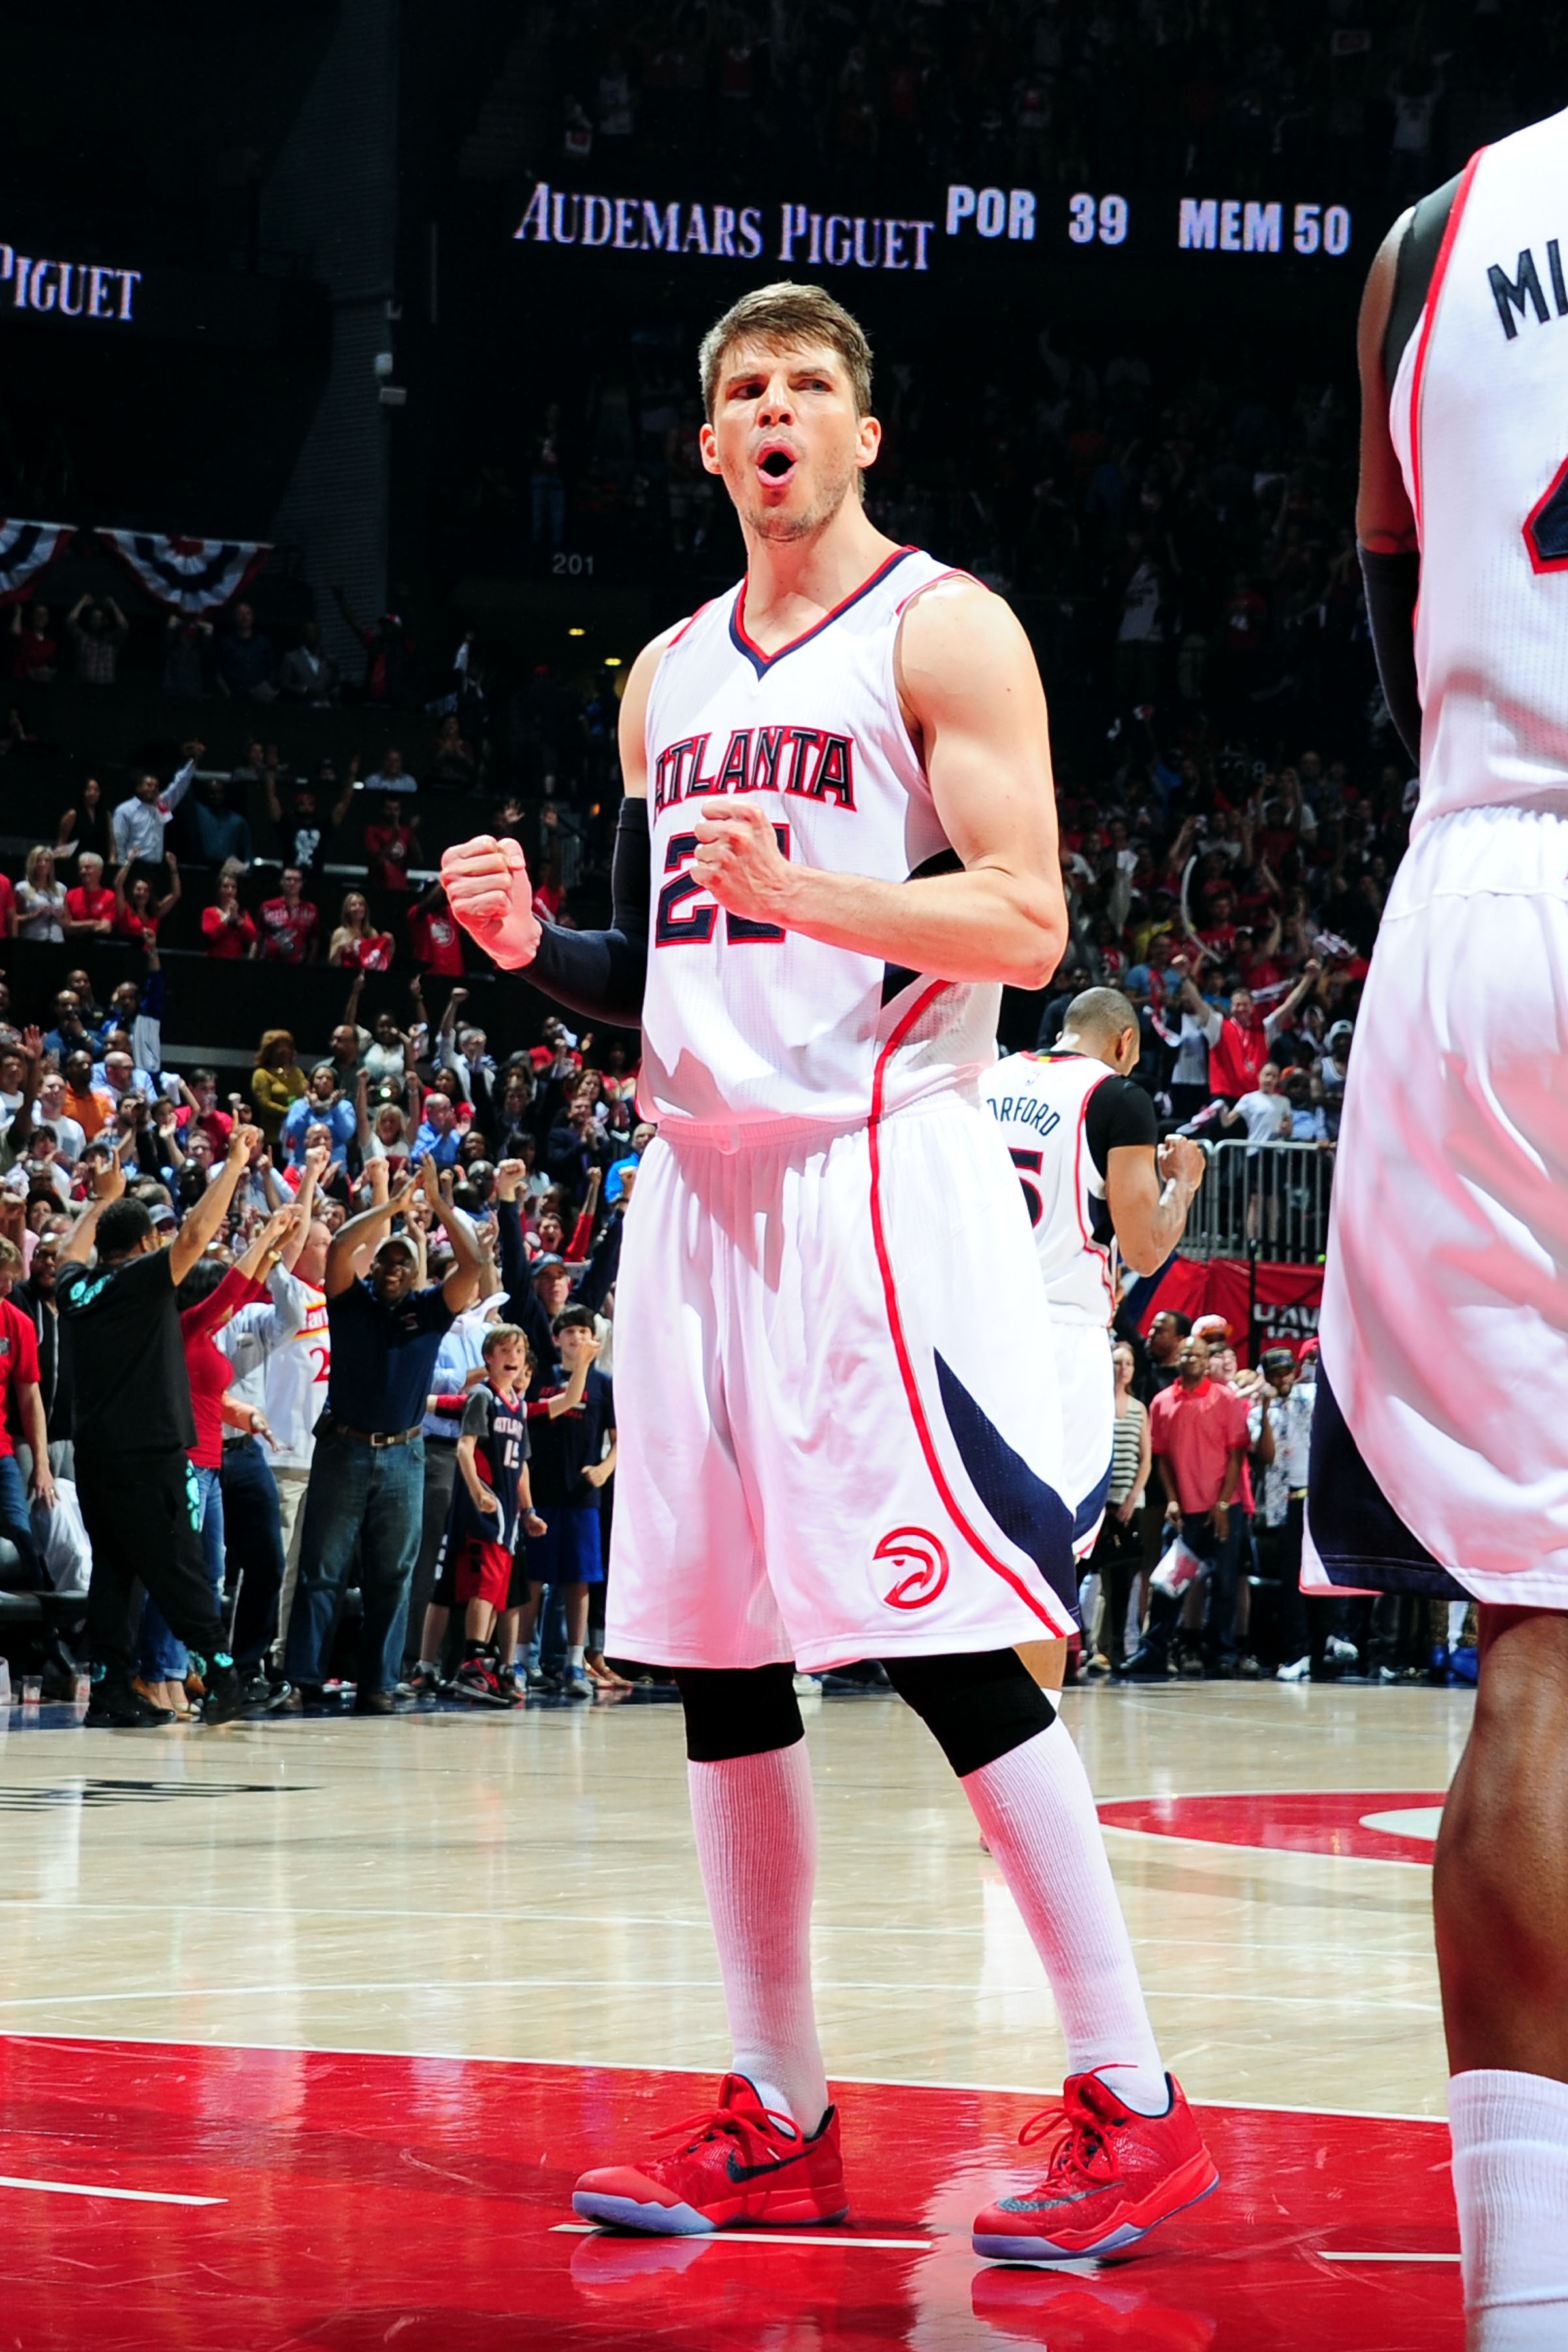 ATLANTA, GA - APRIl 22: Kyle Korver #26 of the Atlanta Hawks celebrates during a game against the Brooklyn Nets in Game Two of the Eastern Conference Quarterfinals of the NBA Playoffs on April 22, 2015 at Philips Arena in Atlanta, Georgia. (Photo by Scott